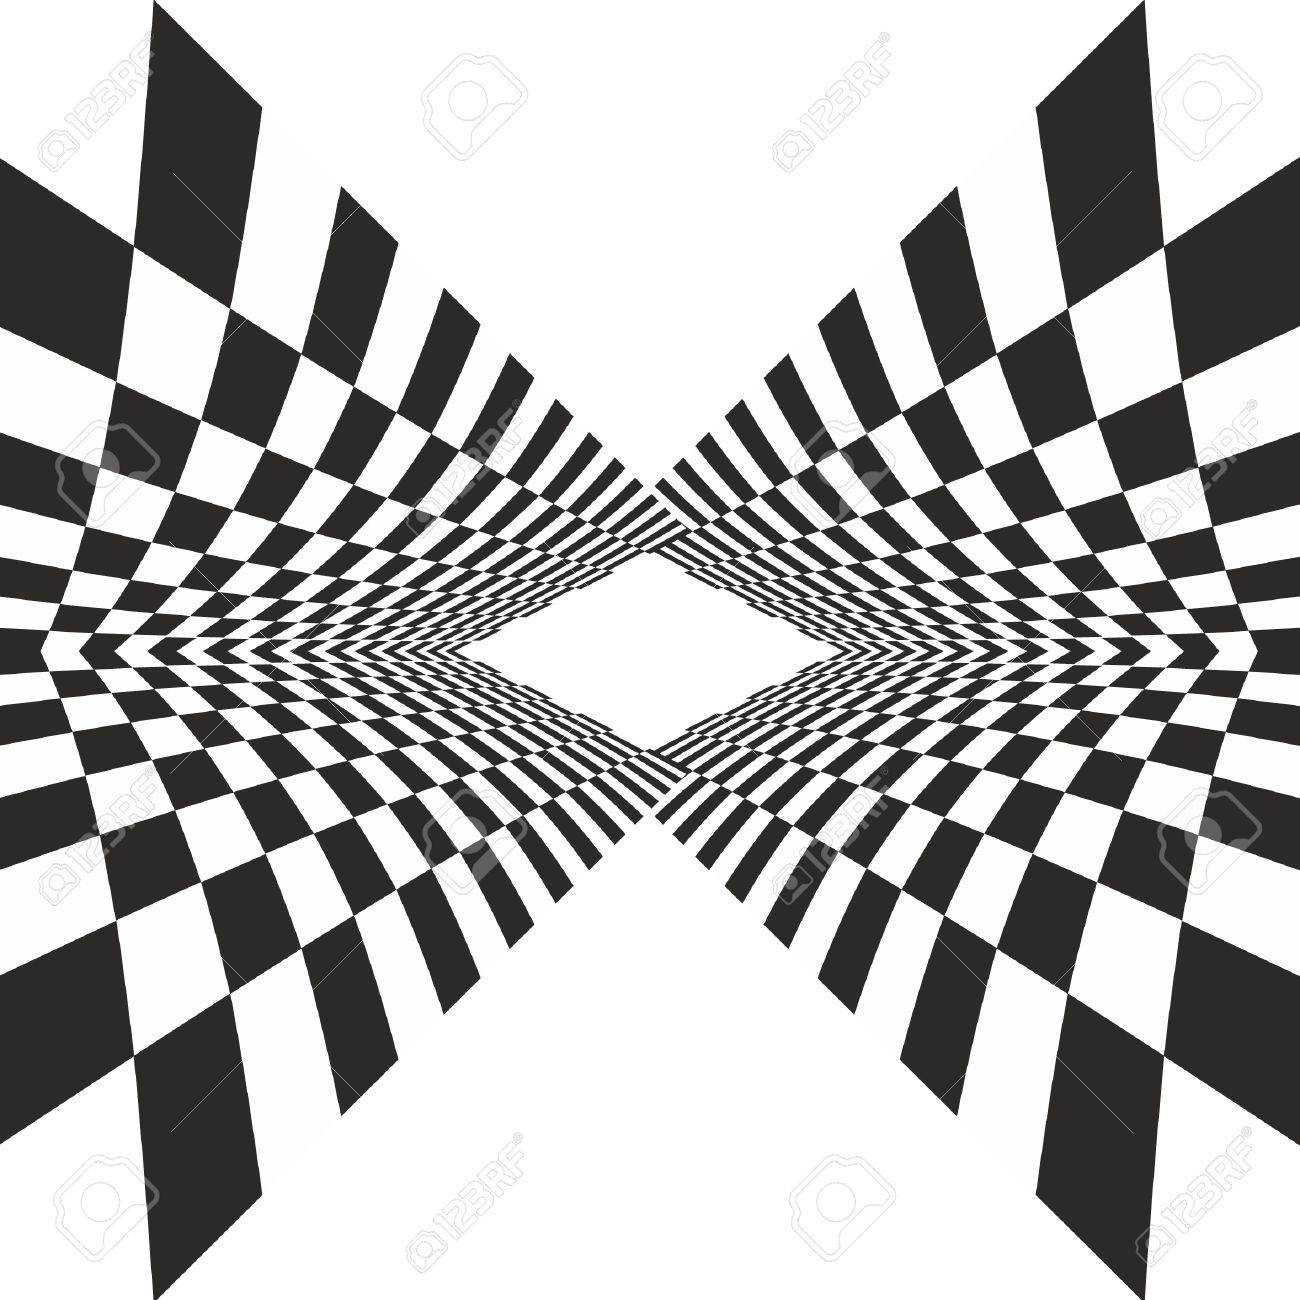 Checkered Design Checkered Background Royalty Free Cliparts Vectors And Stock